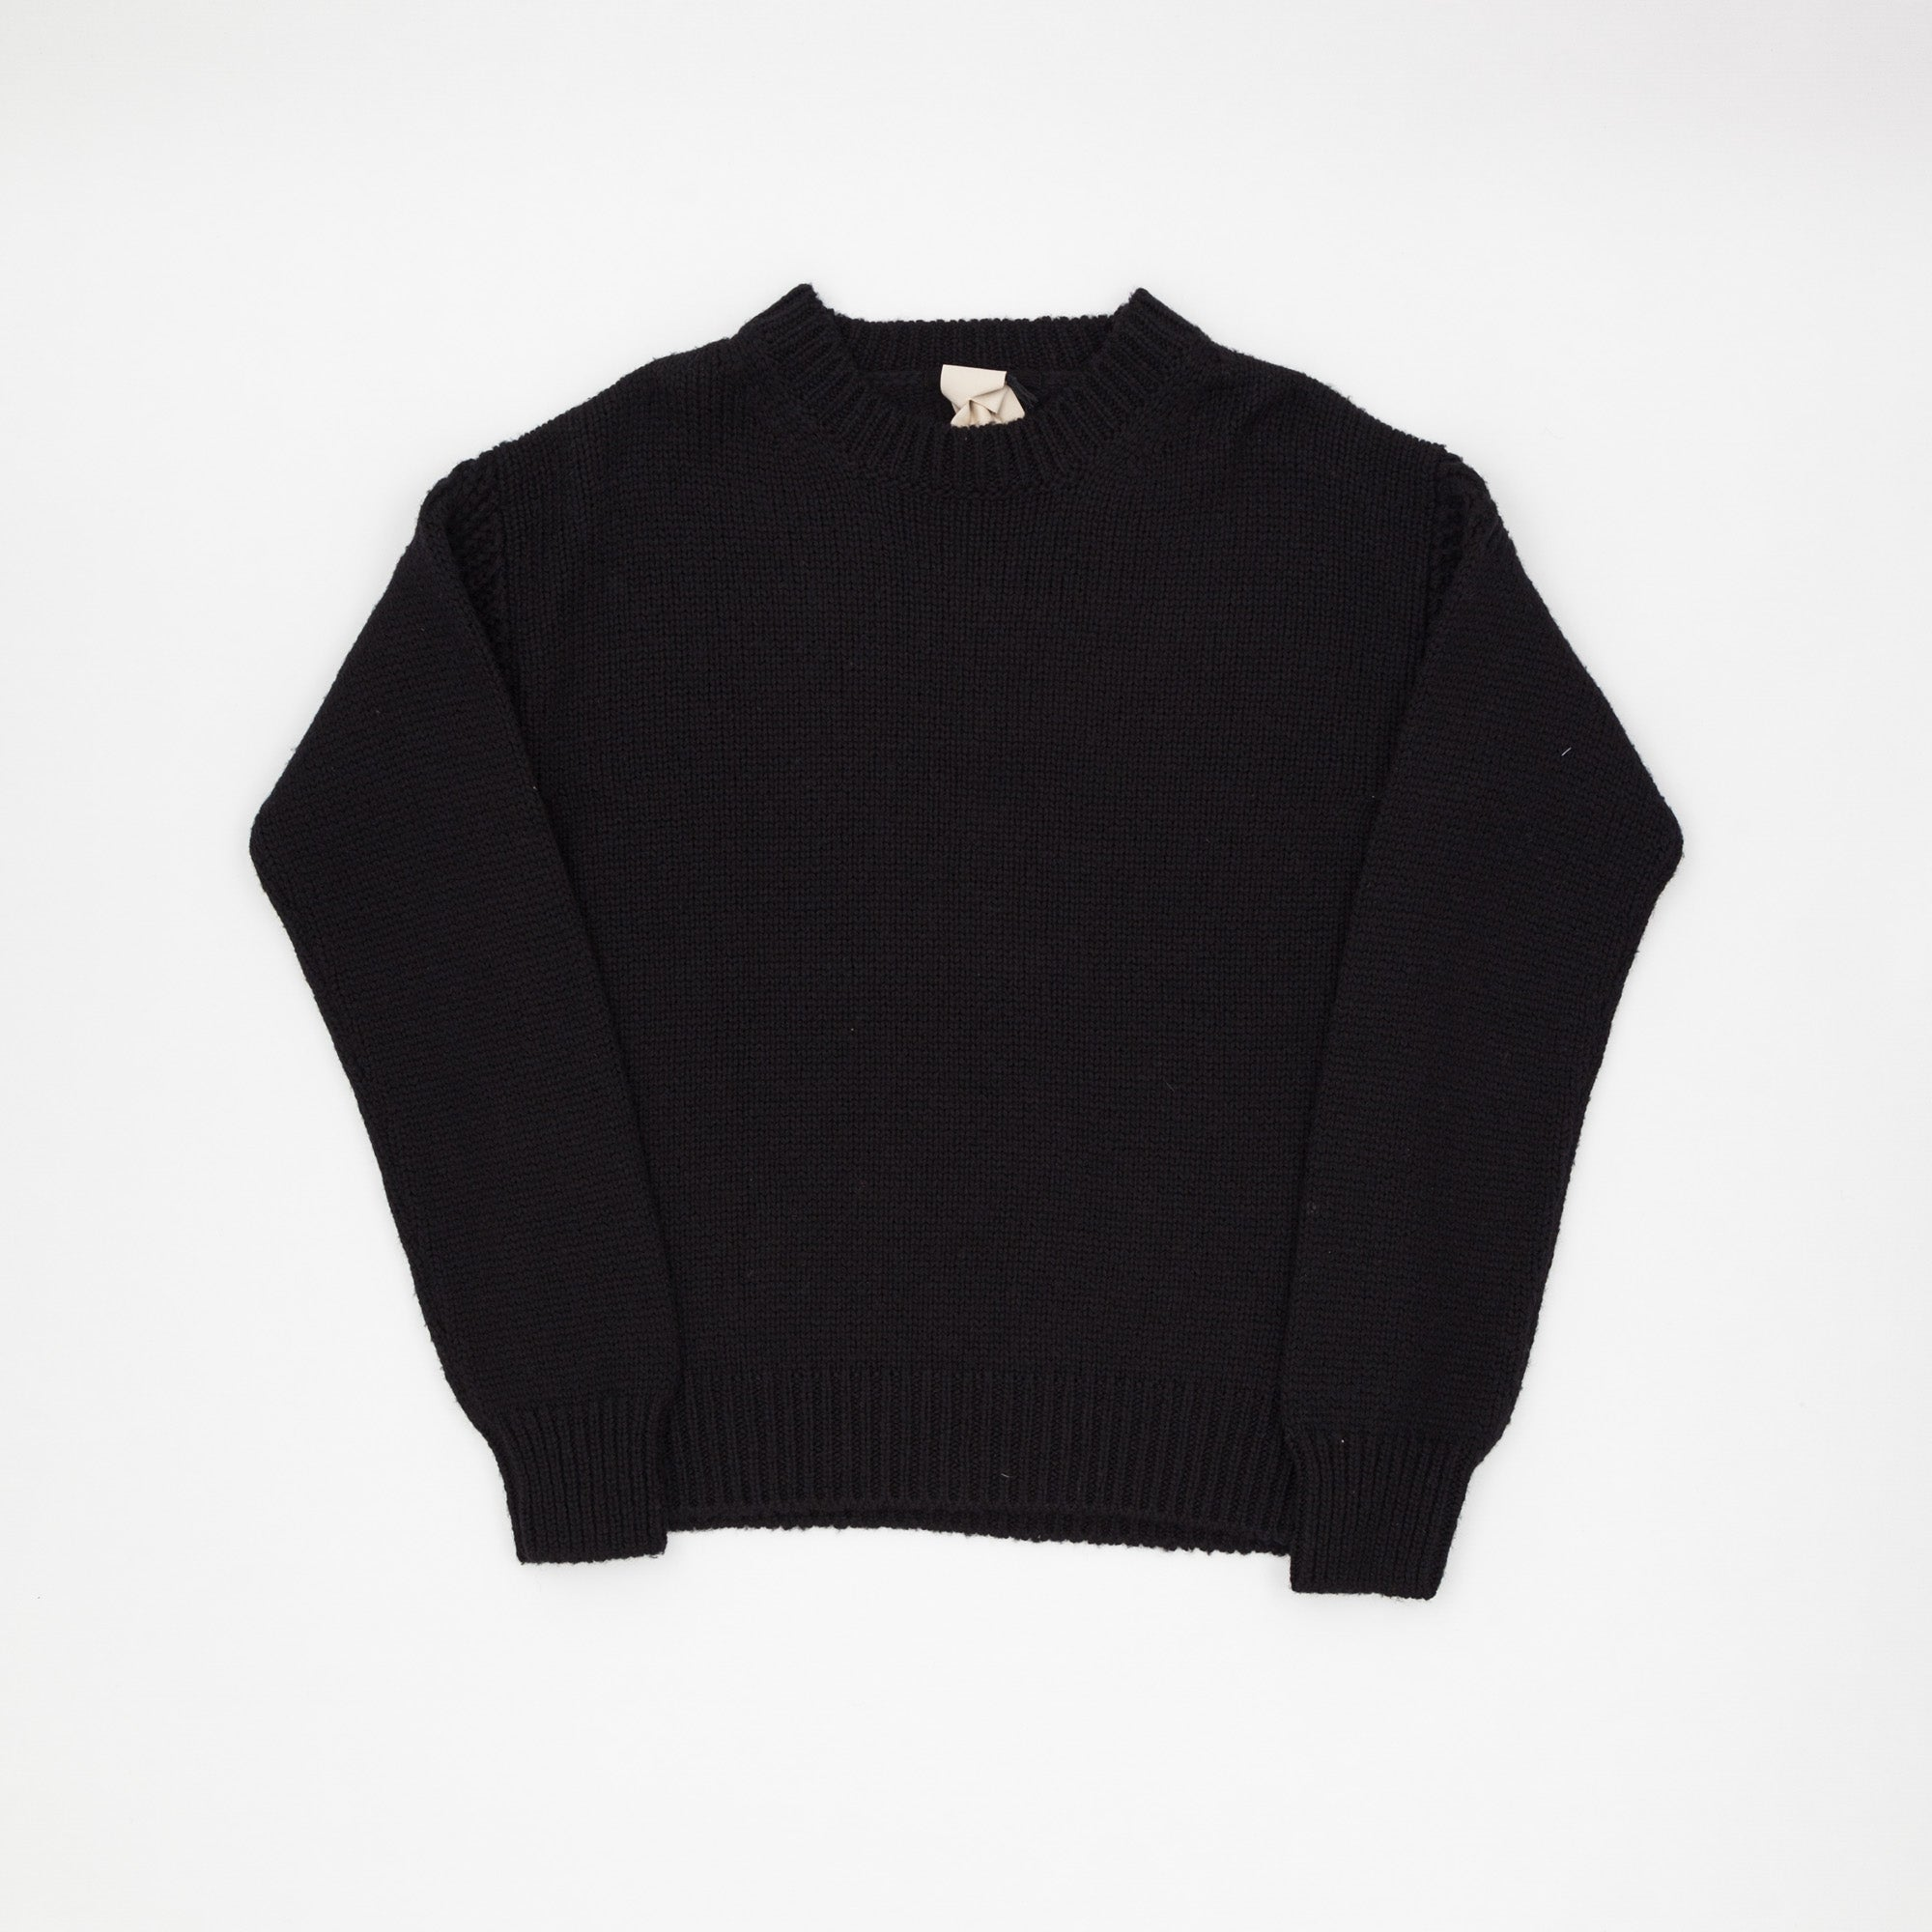 Ten C Knitted Crewneck Sweater